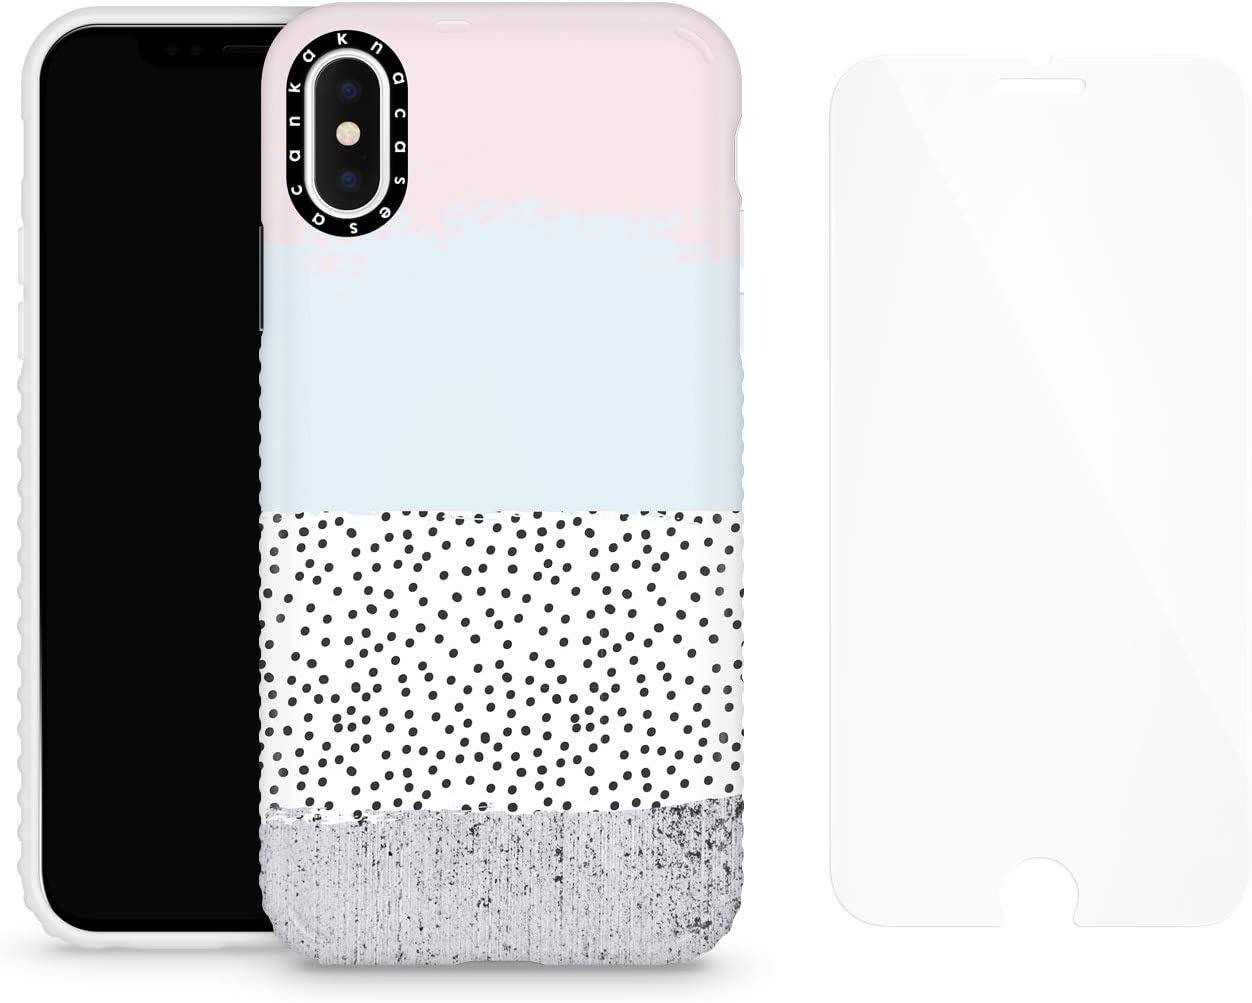 iPhone X & iPhone Xs Case for Girls with Screen Protector, Akna Cat Series High Impact Silicon Cover for iPhone X & iPhone Xs (Design #102429-US)